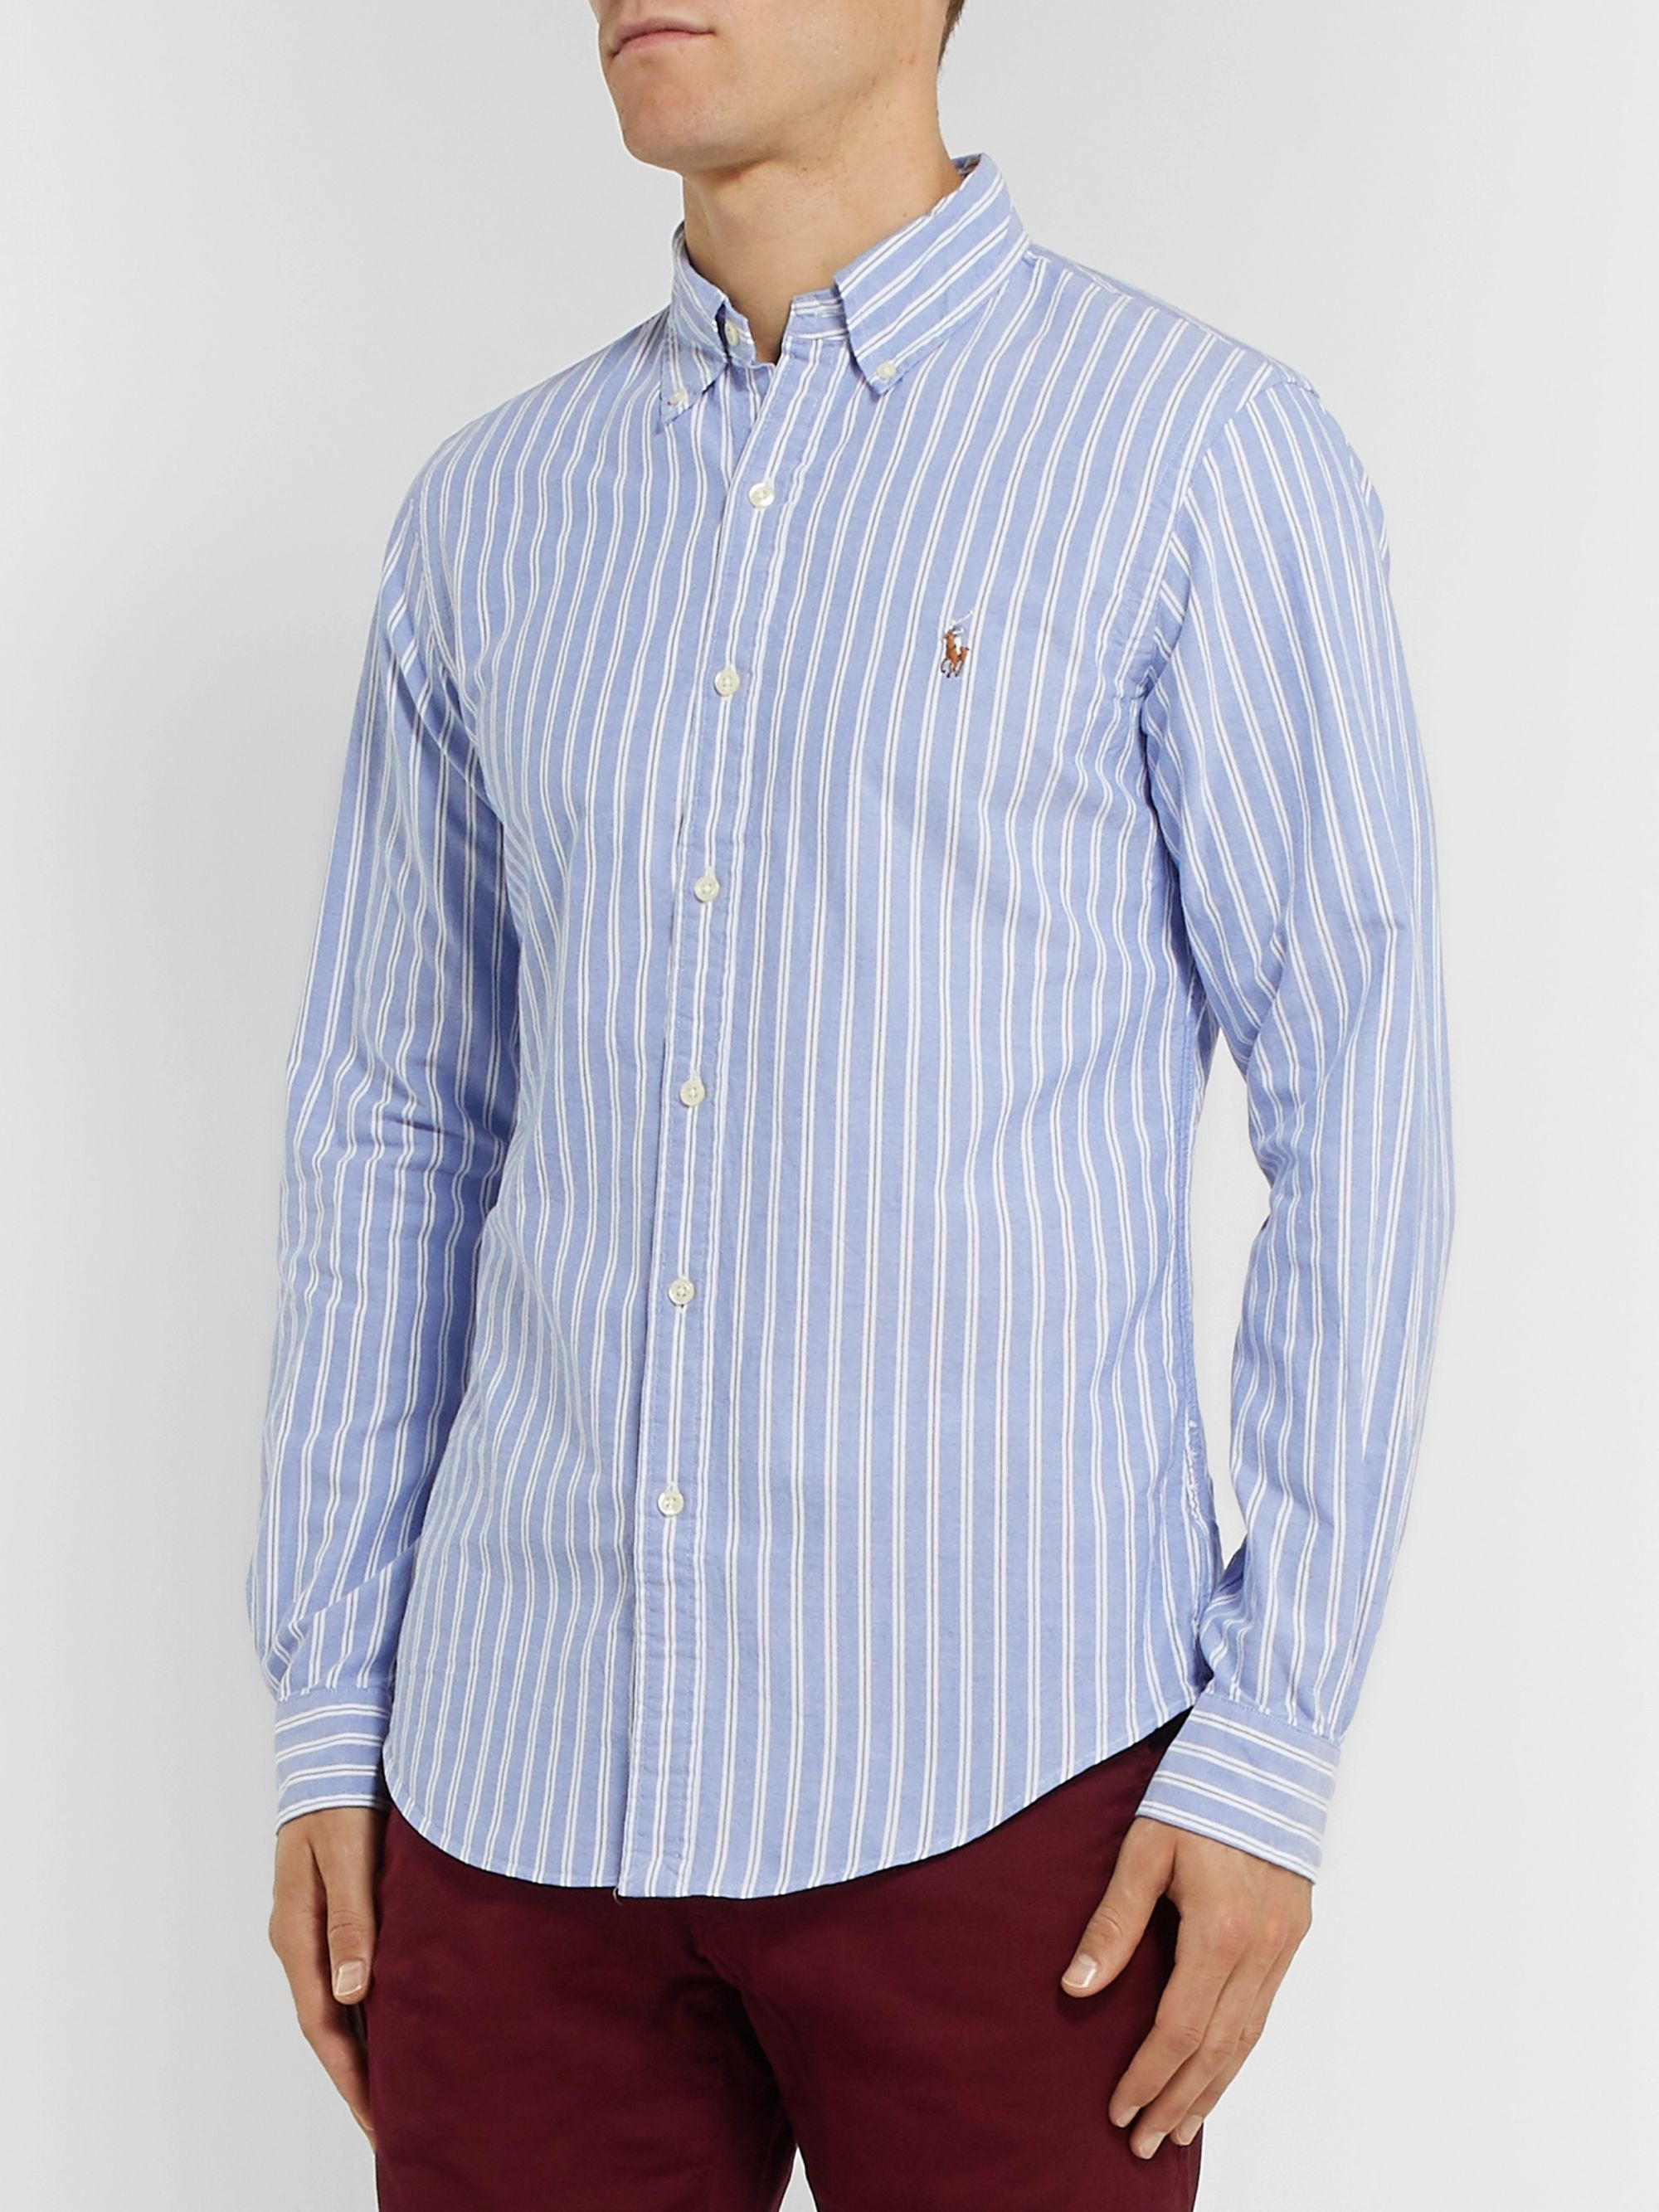 Polo Ralph Lauren Slim-Fit Button-Down Collar Striped Cotton Oxford Shirt